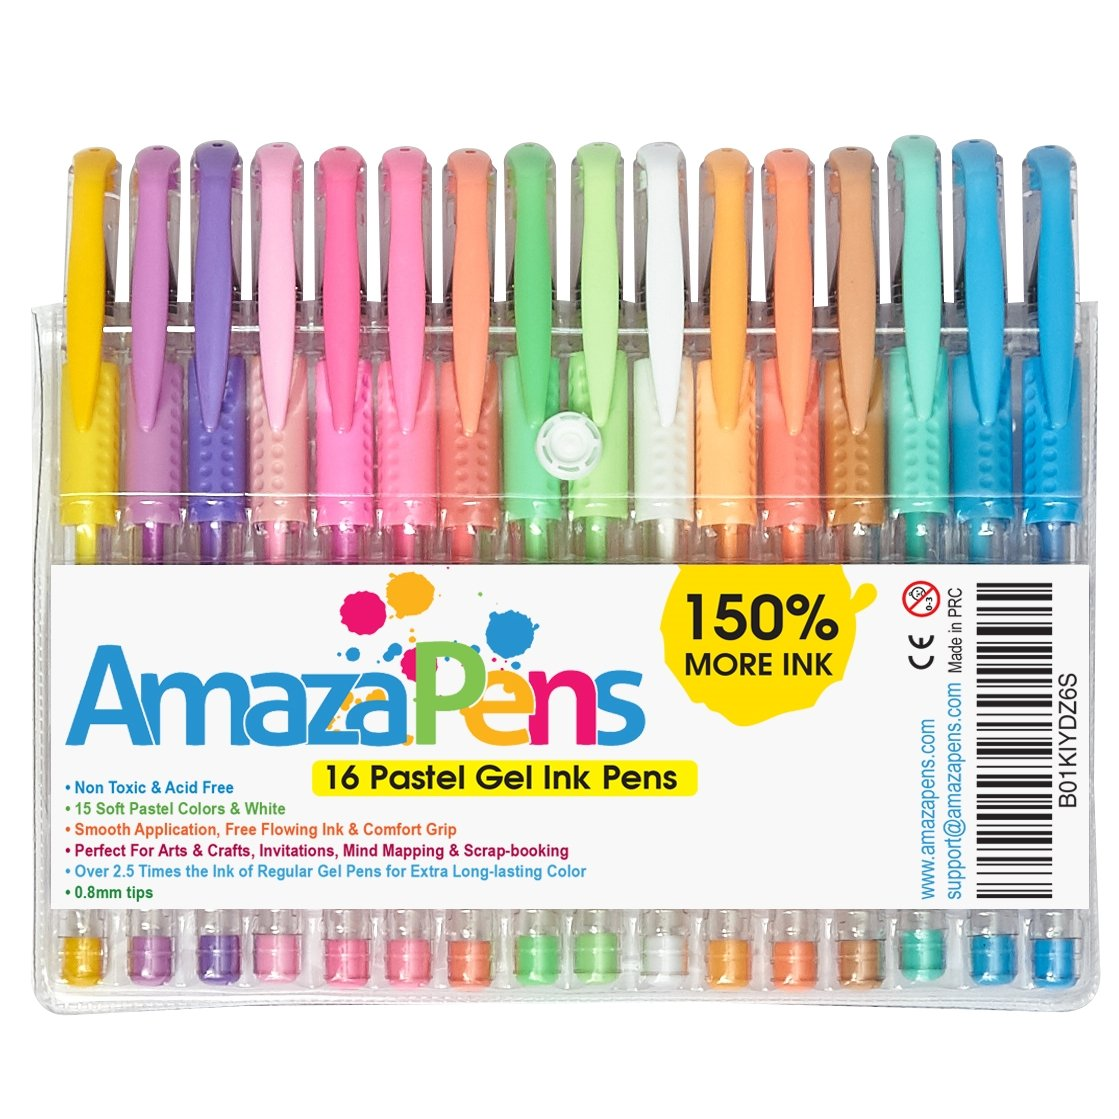 Amazon AmazaPens Coloring Gel Pens For Adult Books 16 Pastel Colors 150 More Ink Arts Crafts Writing Best Value Professional Quality